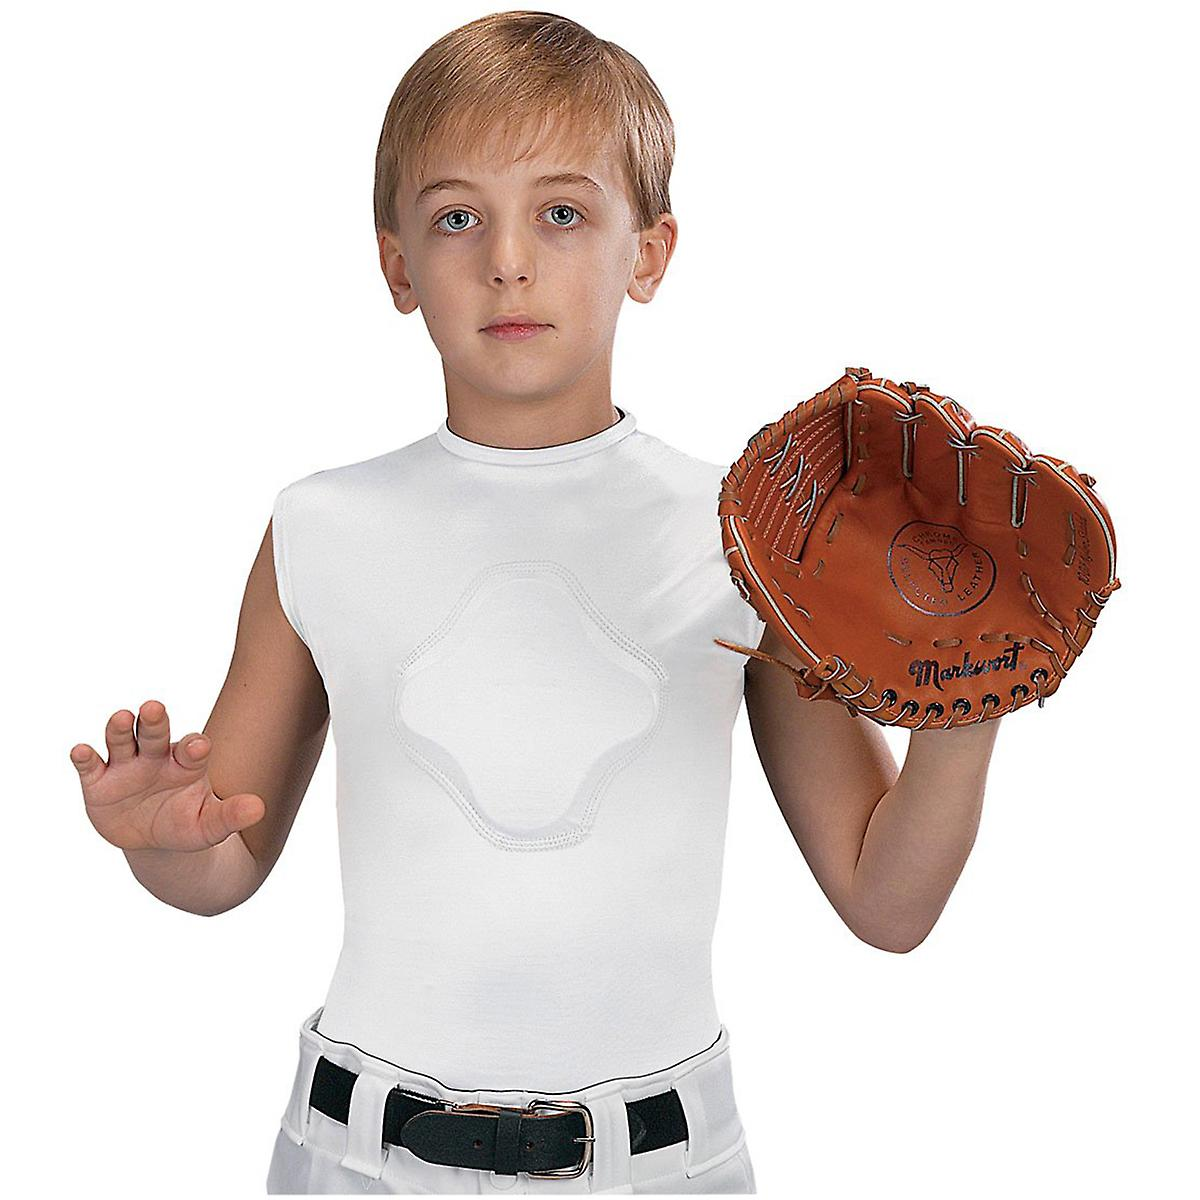 Markwort Youth Heart-Gard Protective Compression Body Shirt - White